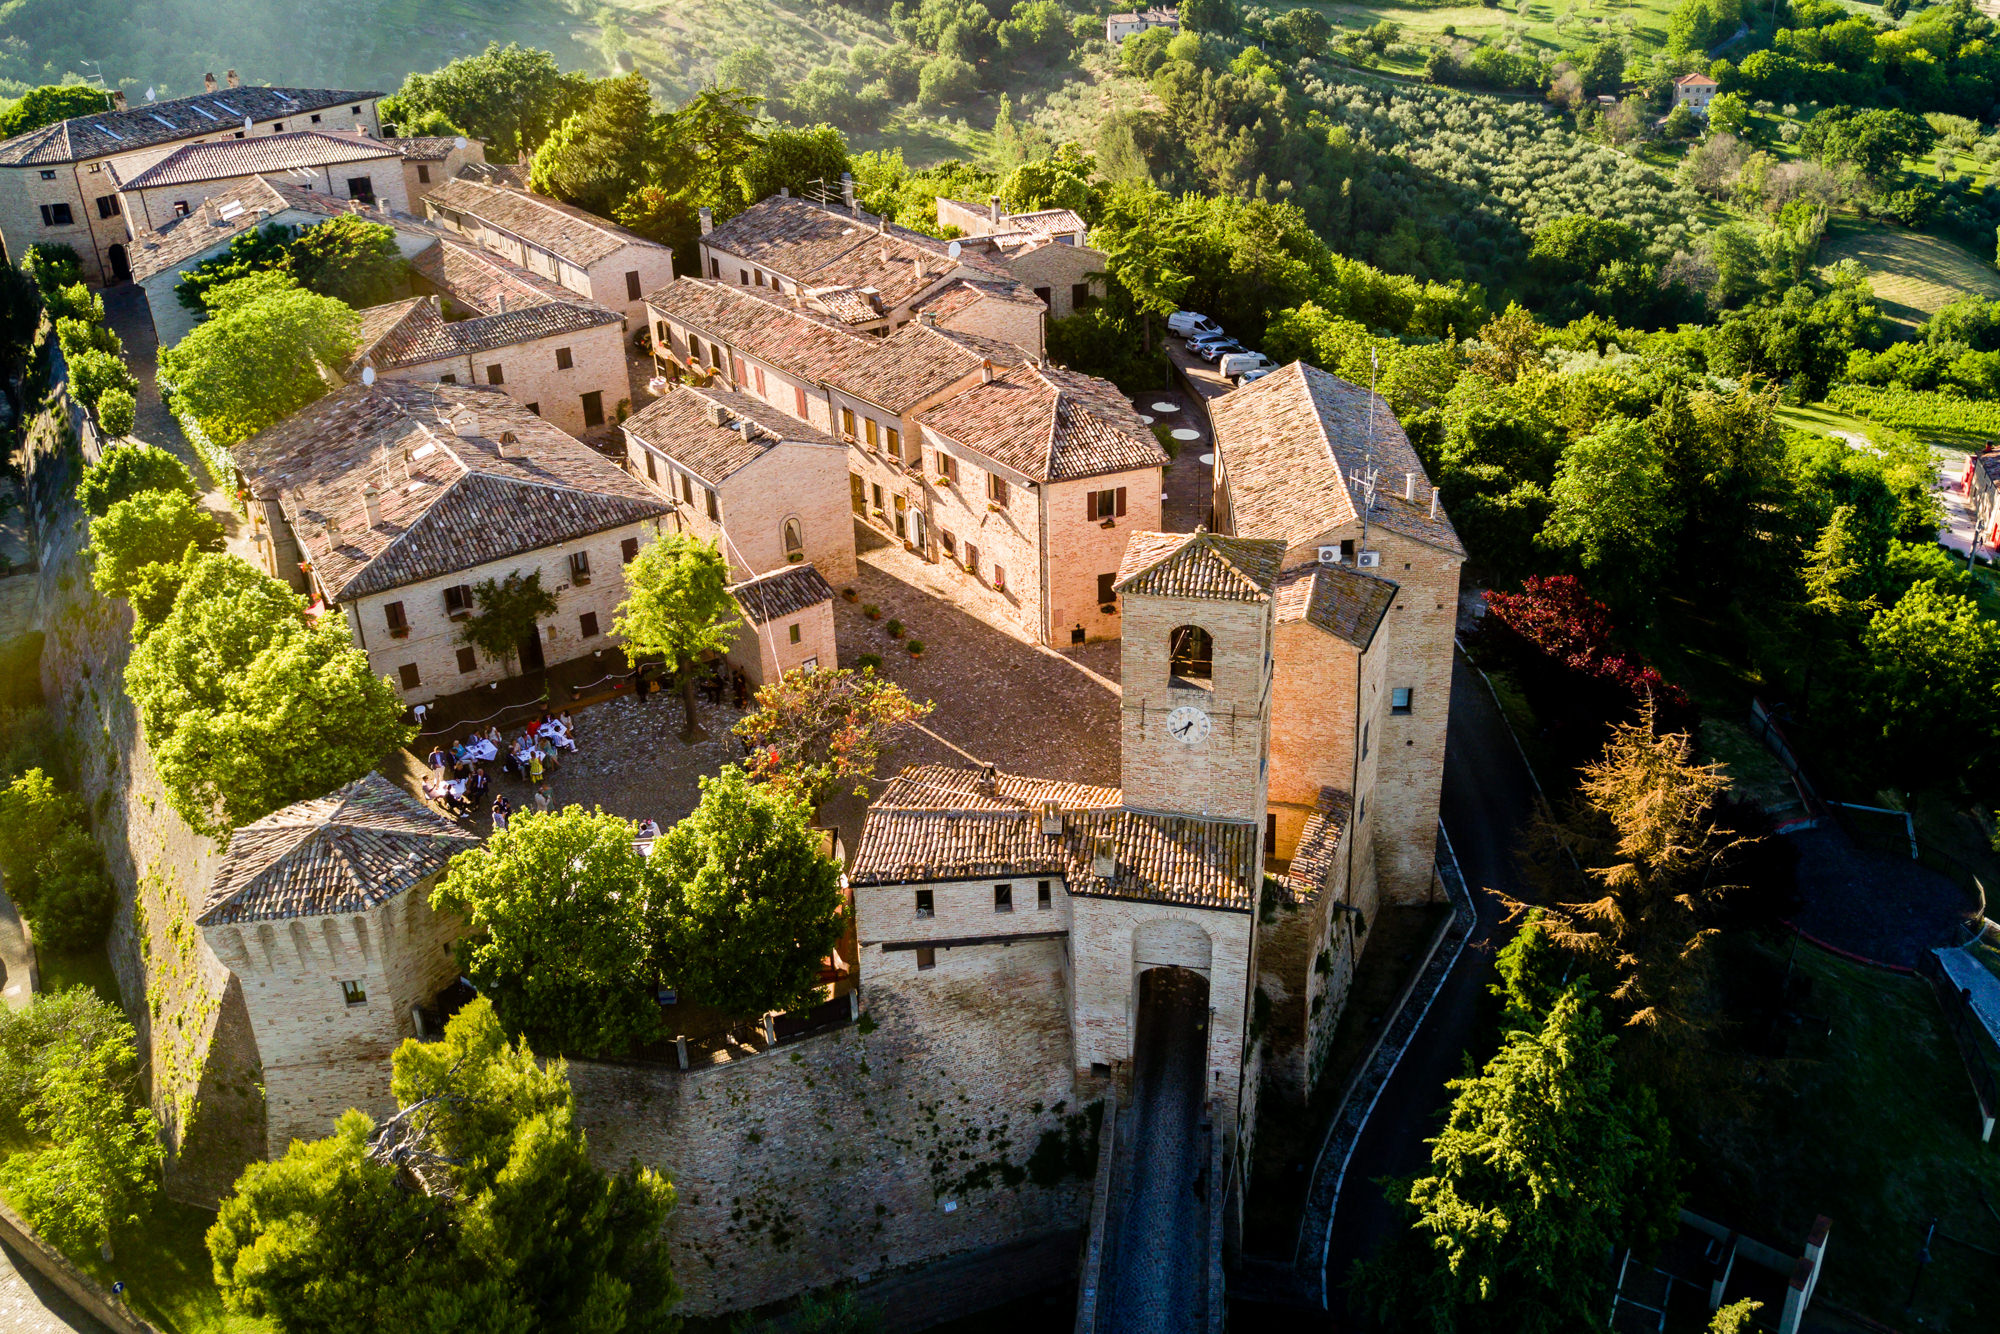 Walled Tuscan village photo by Eppel Photography Netherlands